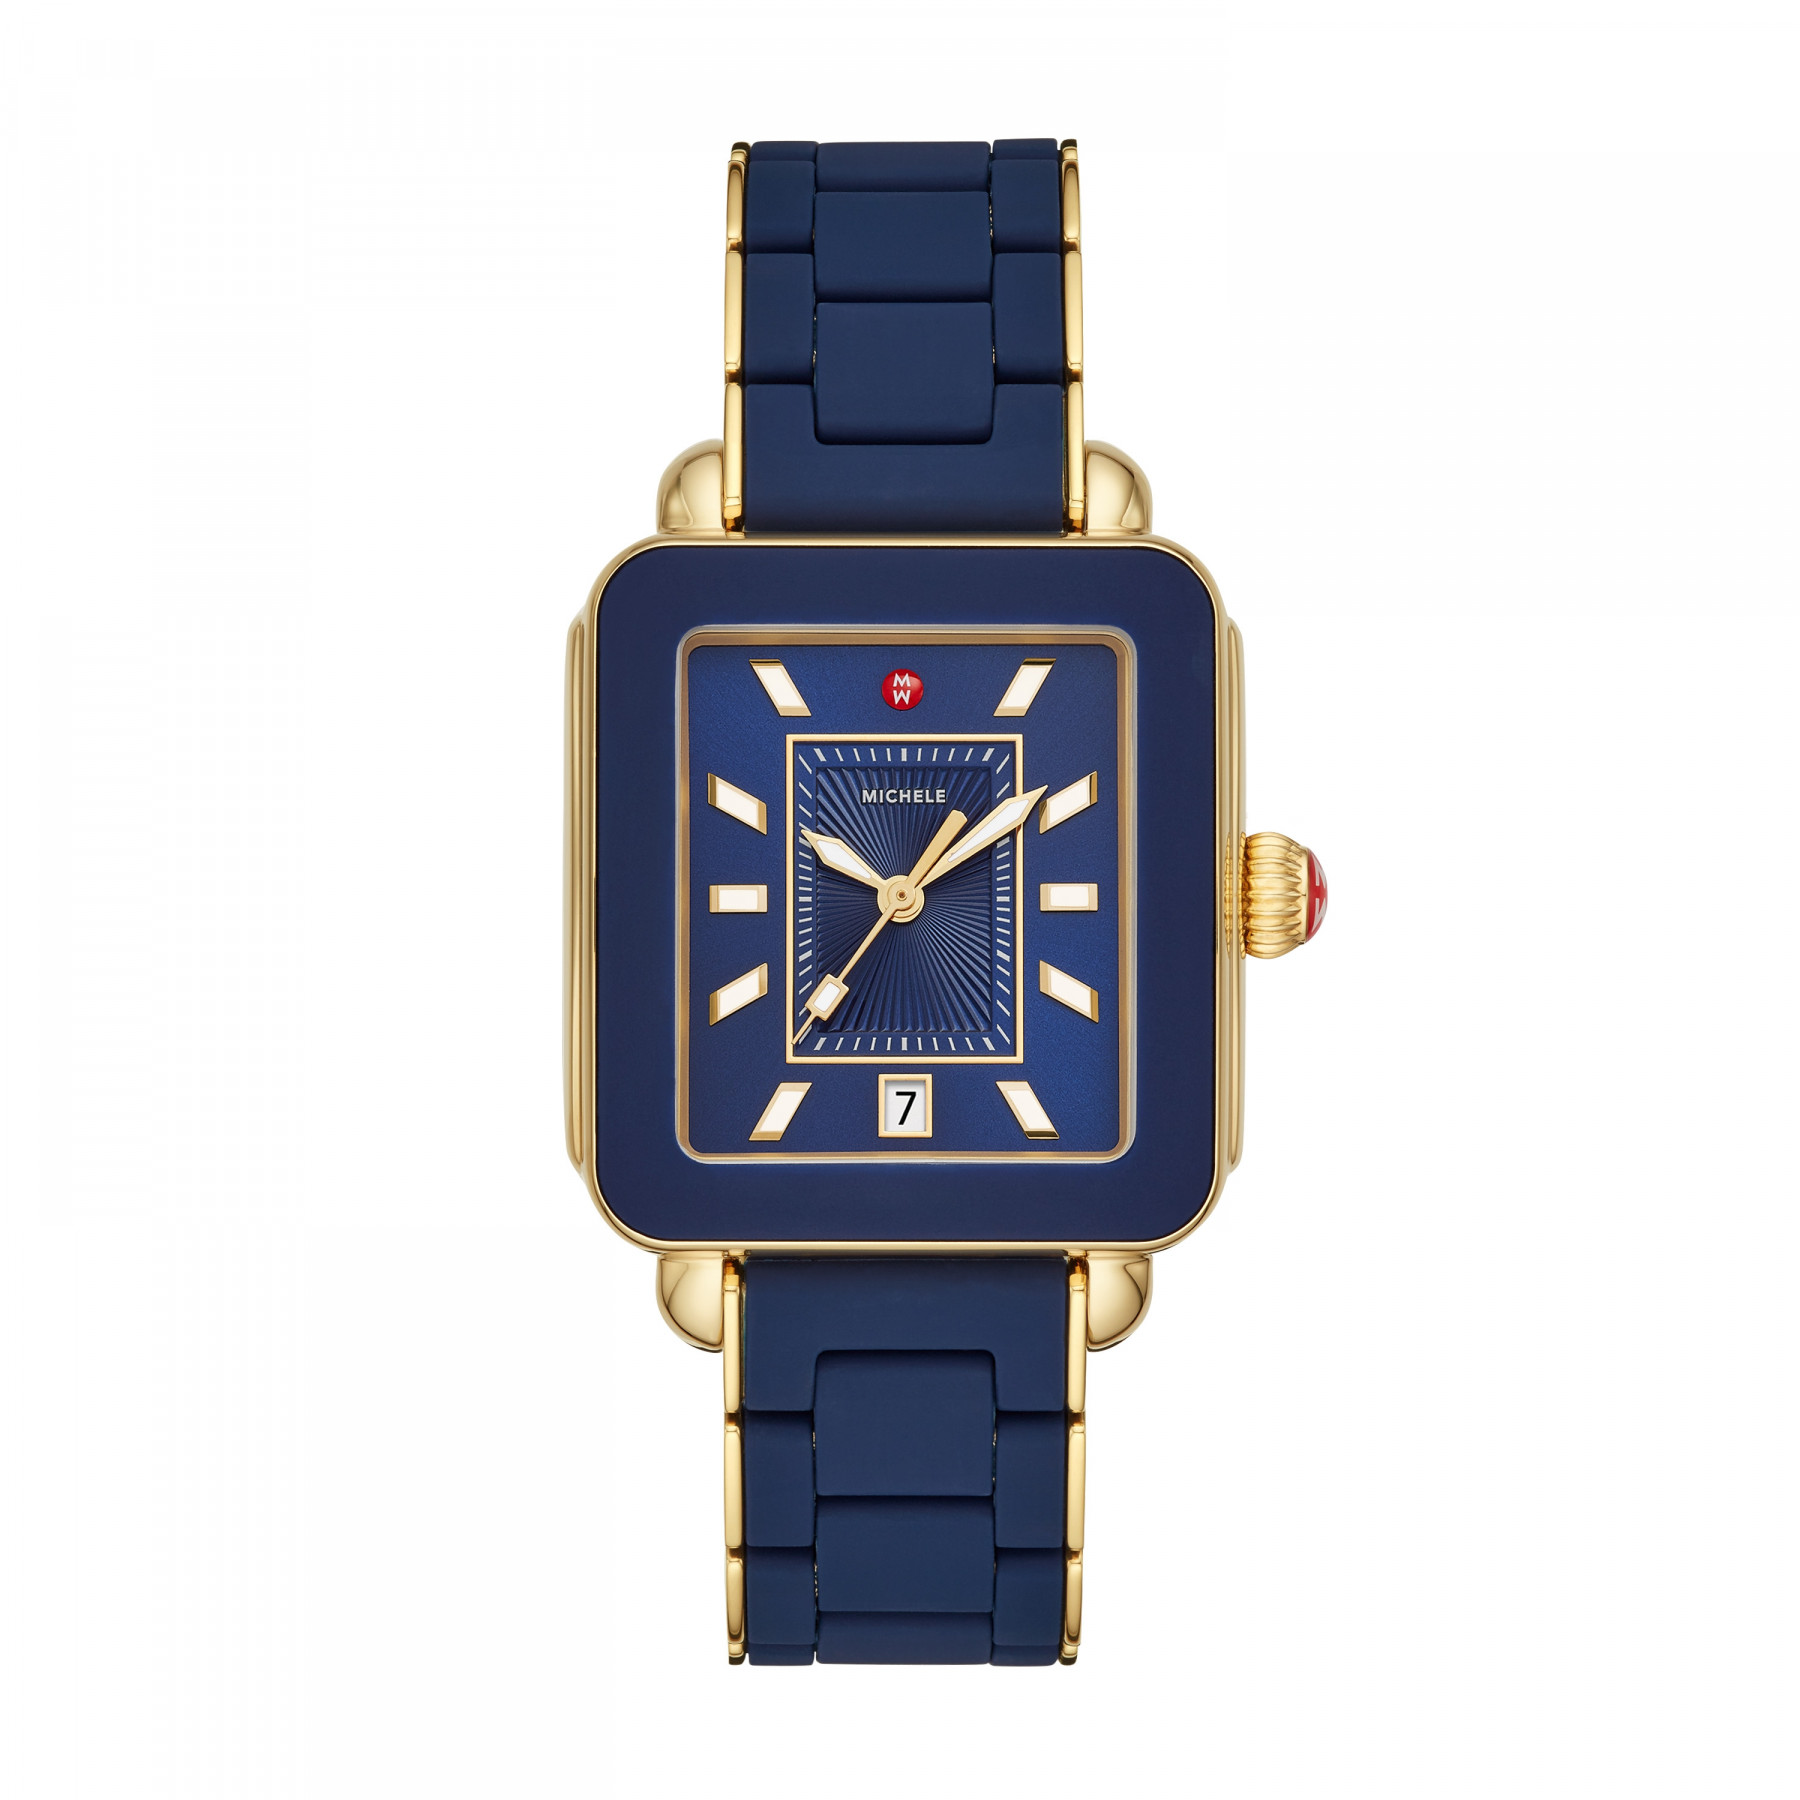 Michele Deco Sport Blue and Yellow Gold Watch on Rubber Link Strap  main image